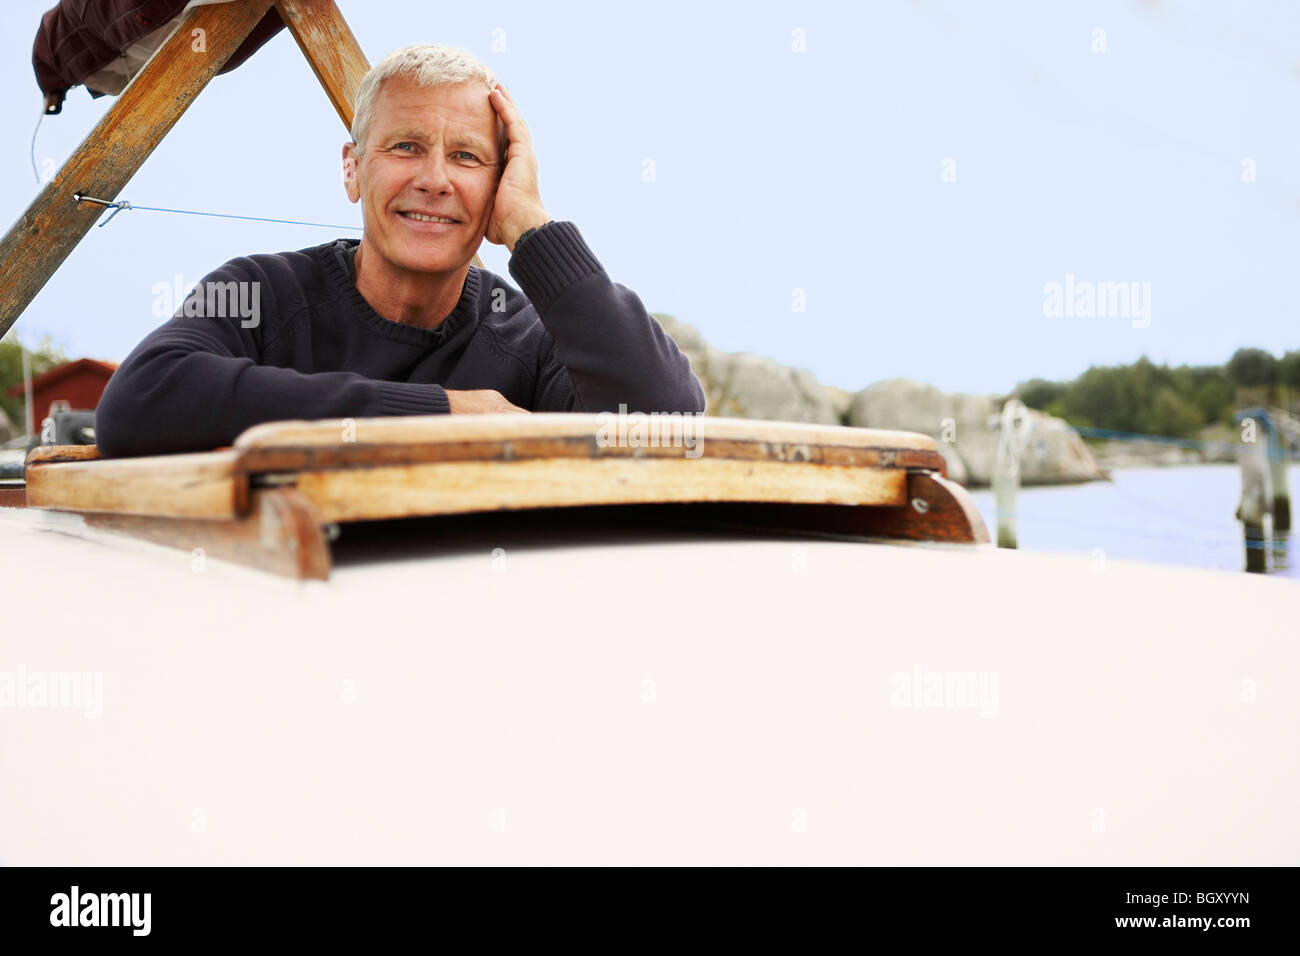 Middle aged man on old boat - Stock Image